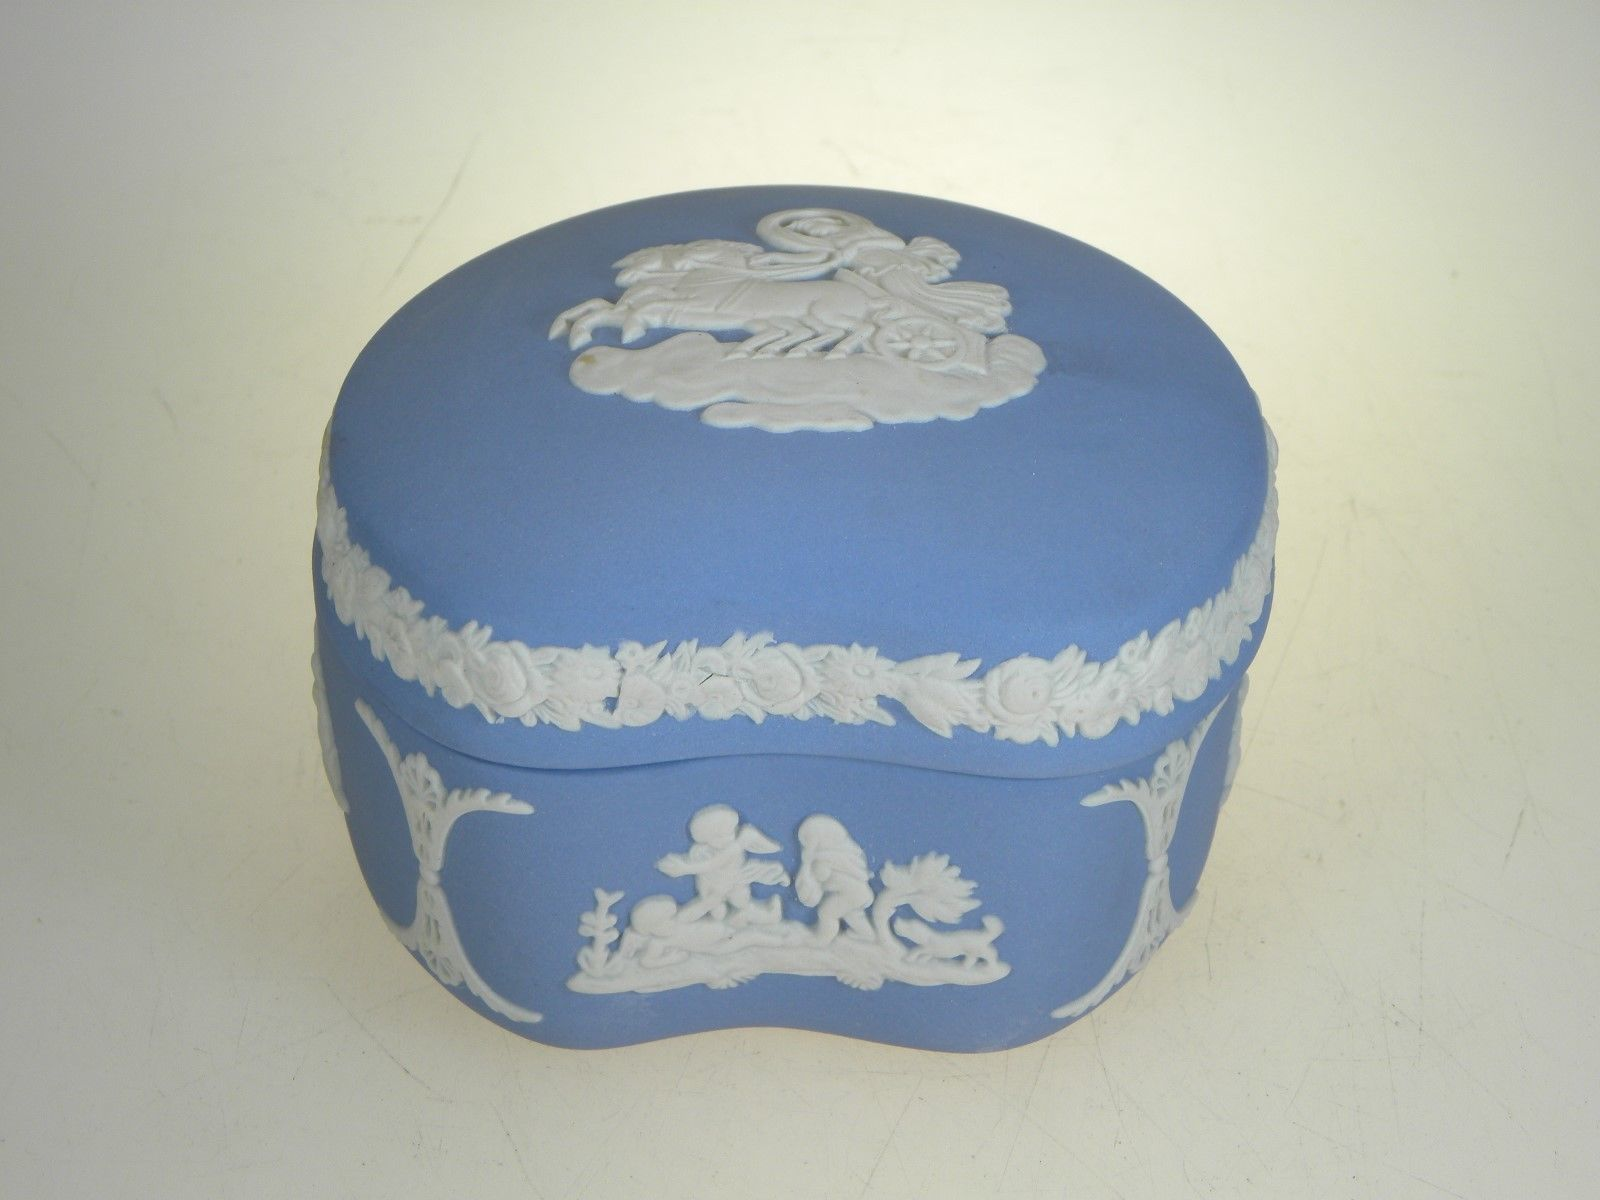 Wedgwood Jasperware Cream on Lavender Bean Box With Lid